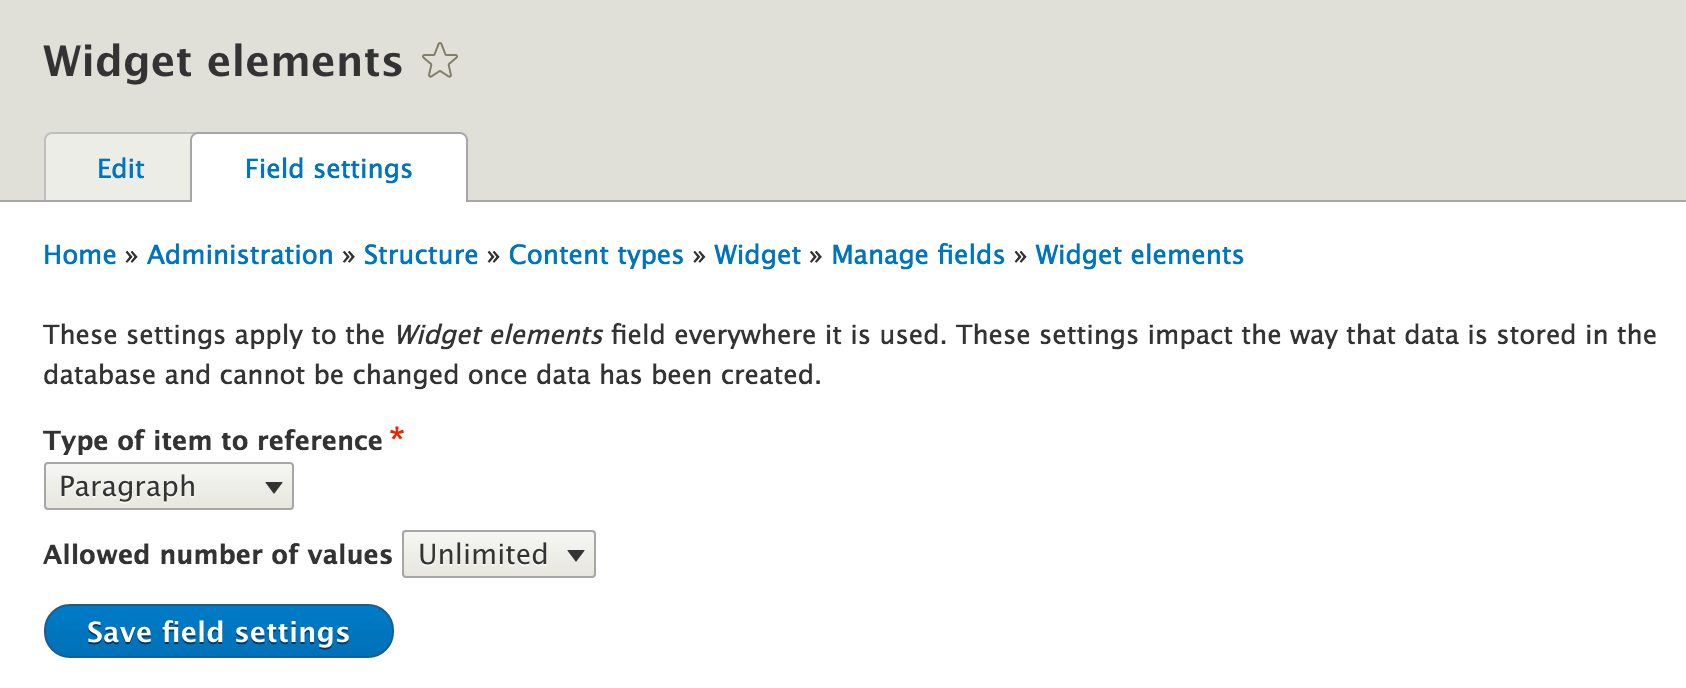 Generating embeddable Help widgets from a Drupal 8 site | Pronovix